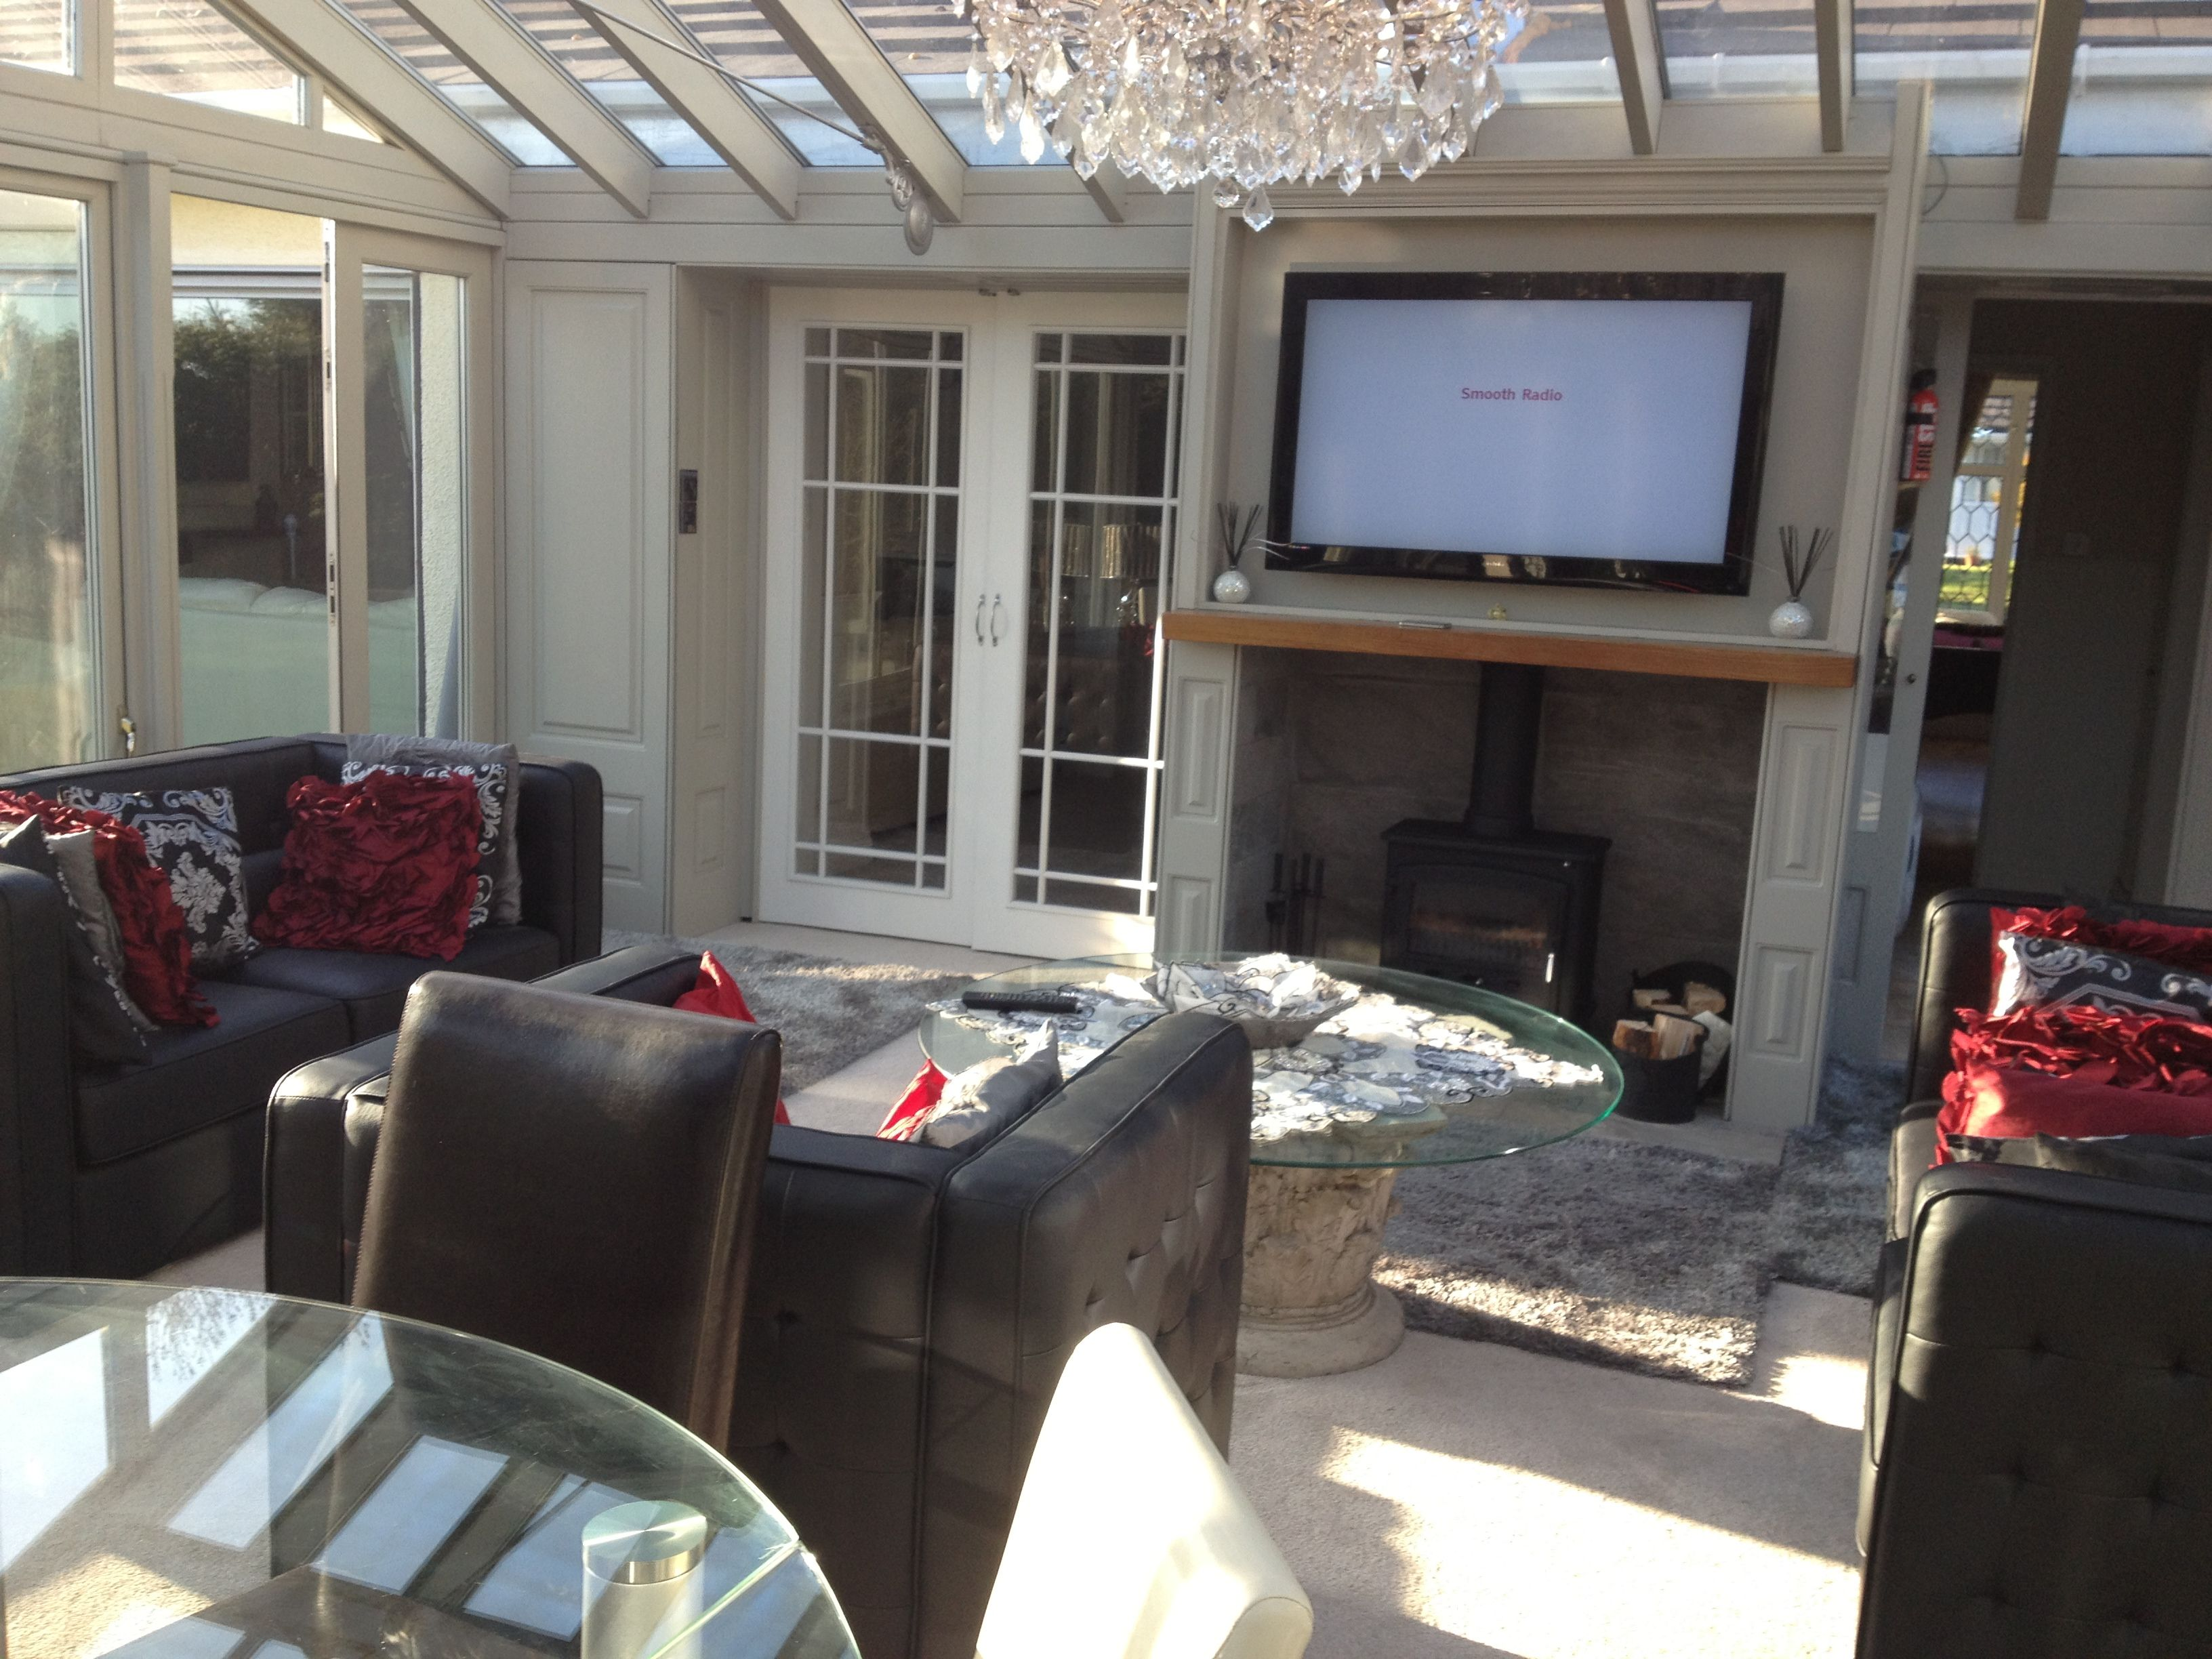 Conservatory Panelling With Specially Designed Fireplace And Tv